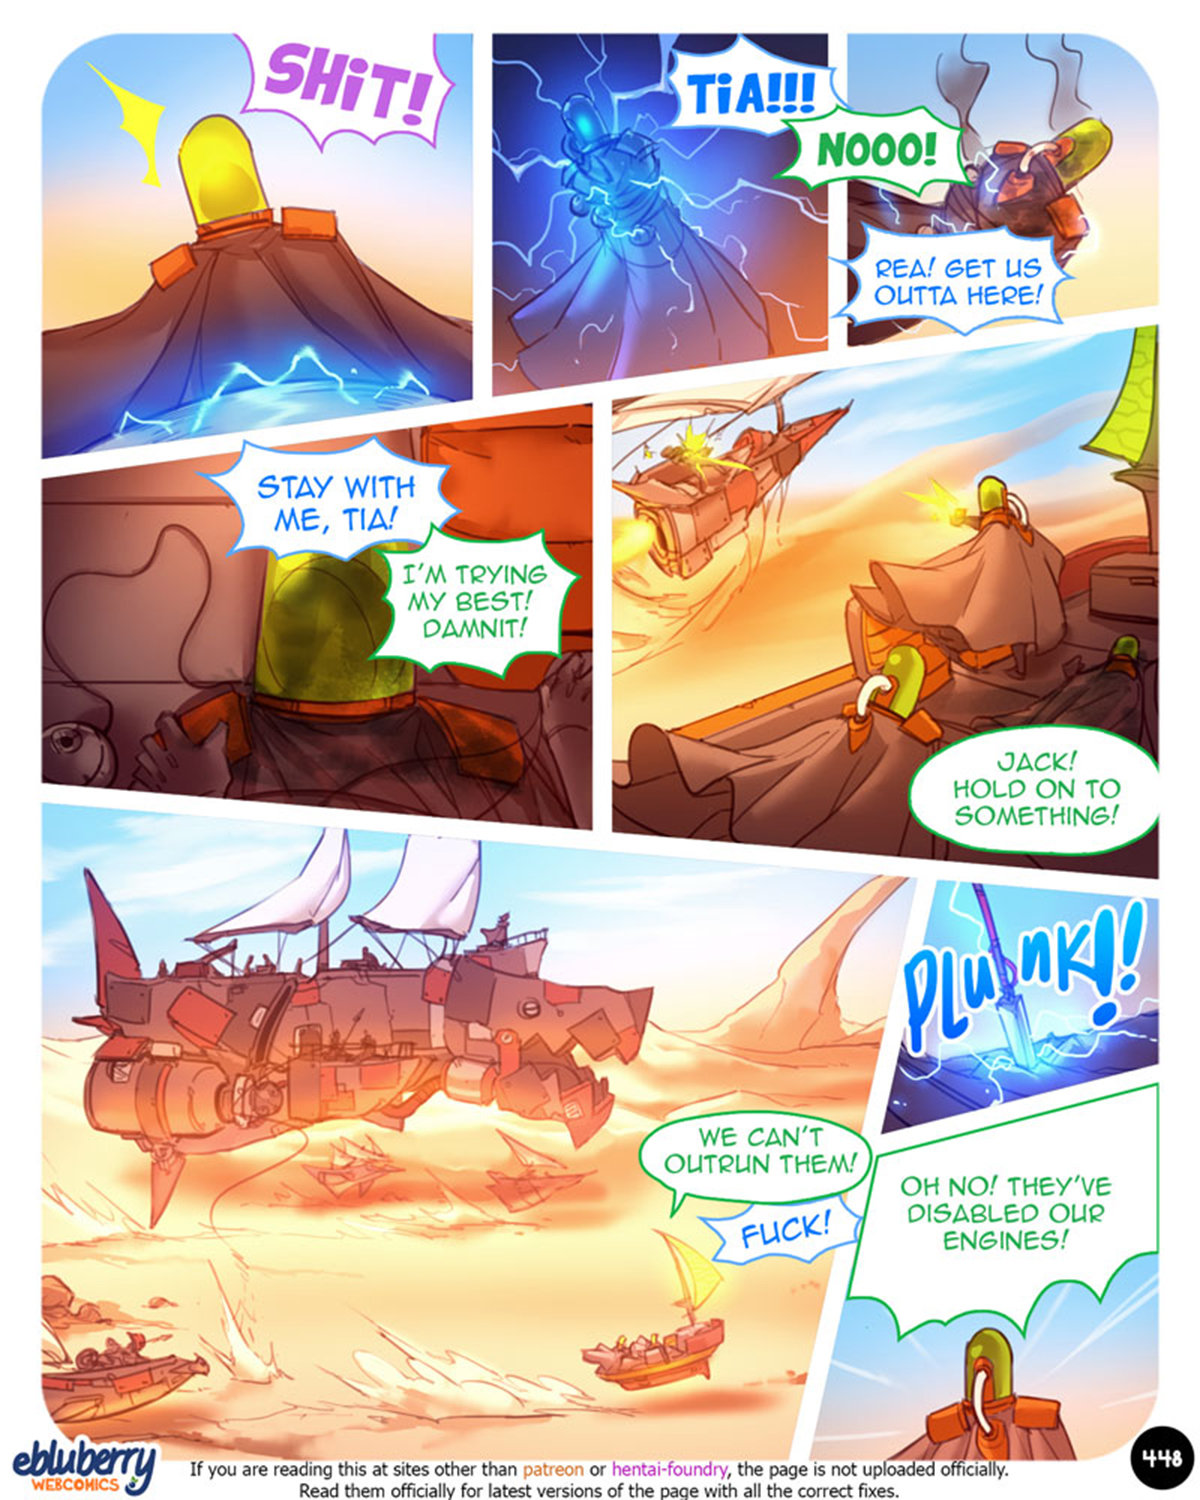 009 4 - S.EXpedition - [Ebluberry]. Part 22.